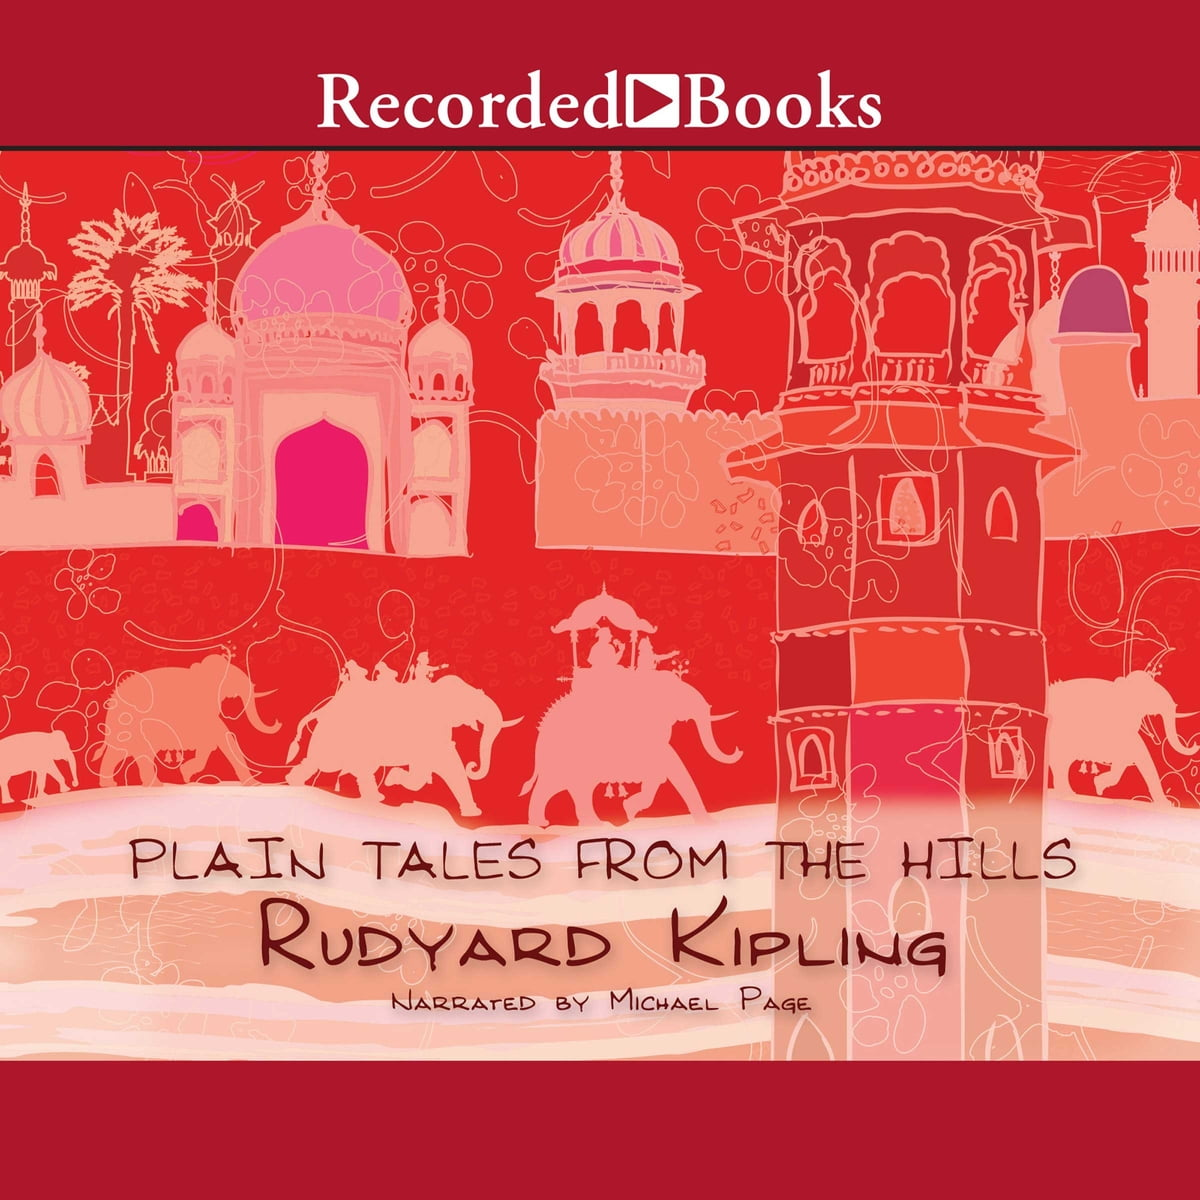 the mark of the beast by rudyard kipling analysis